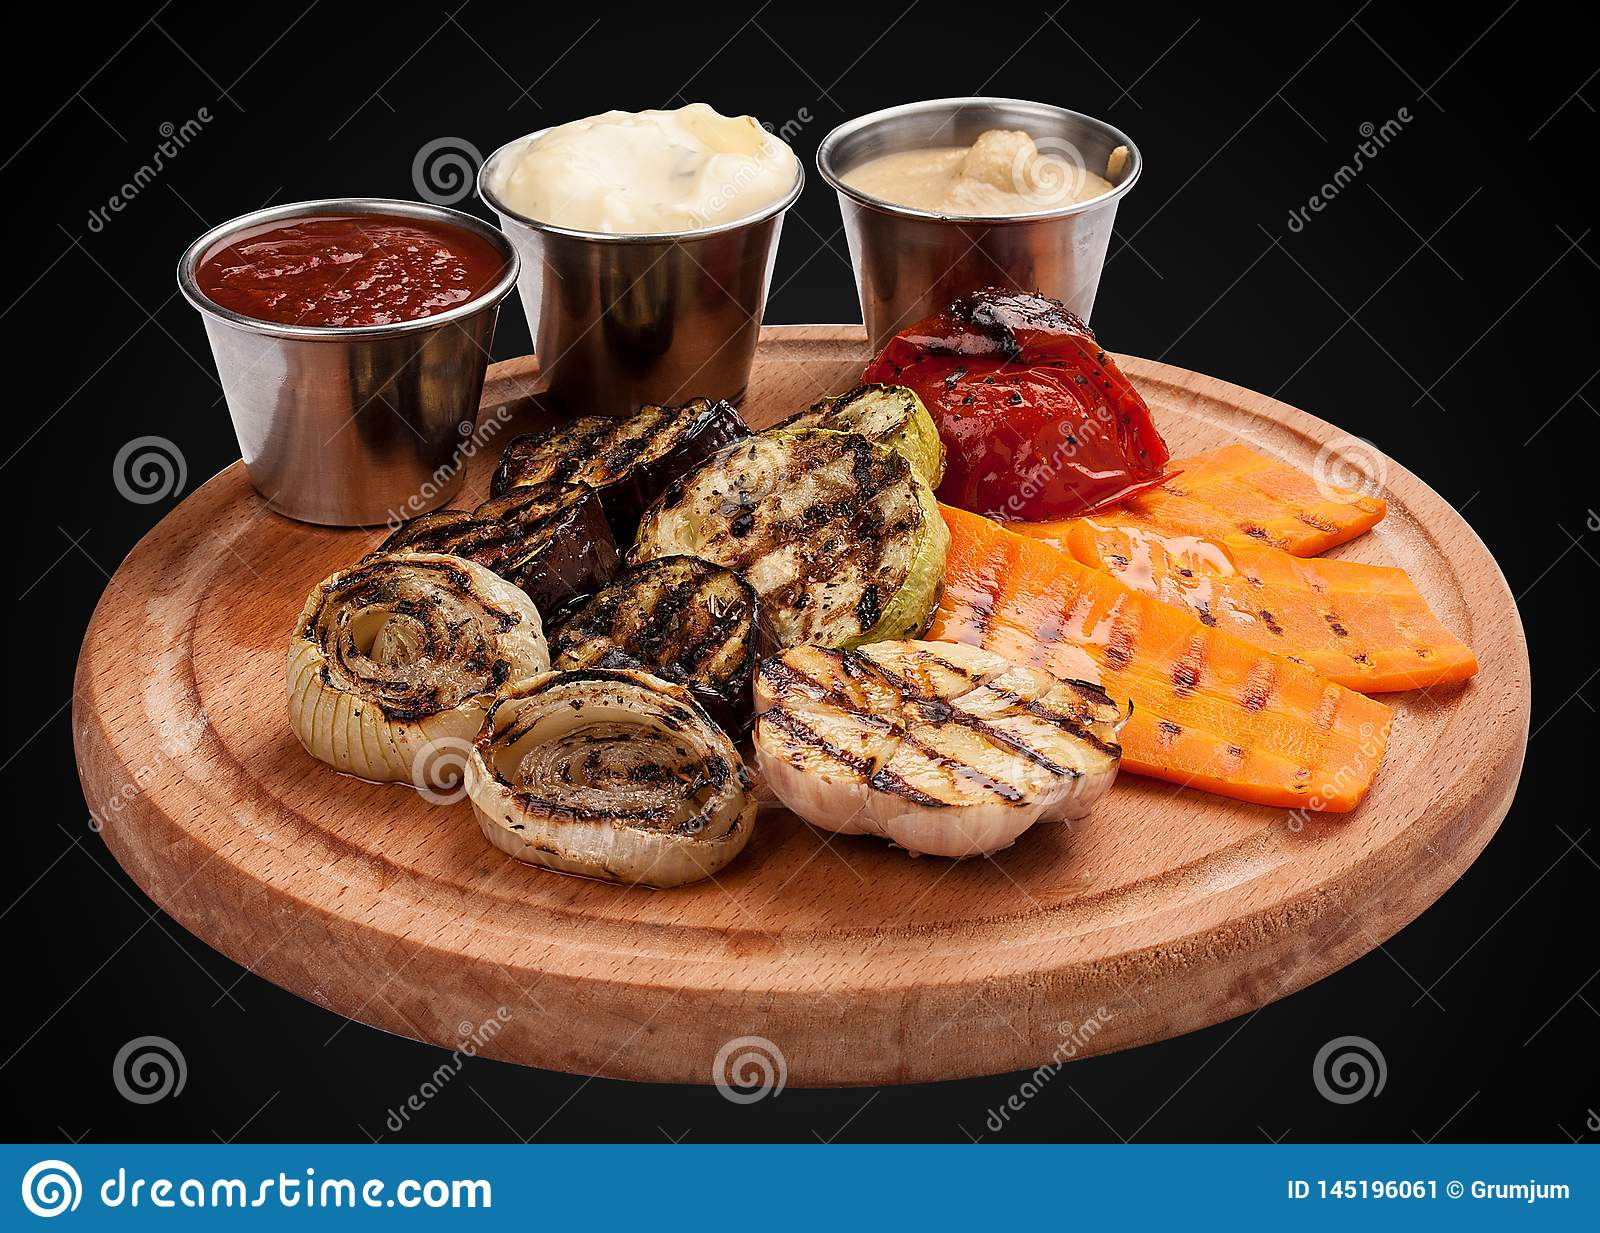 Assorted grilled vegetables on a wooden board